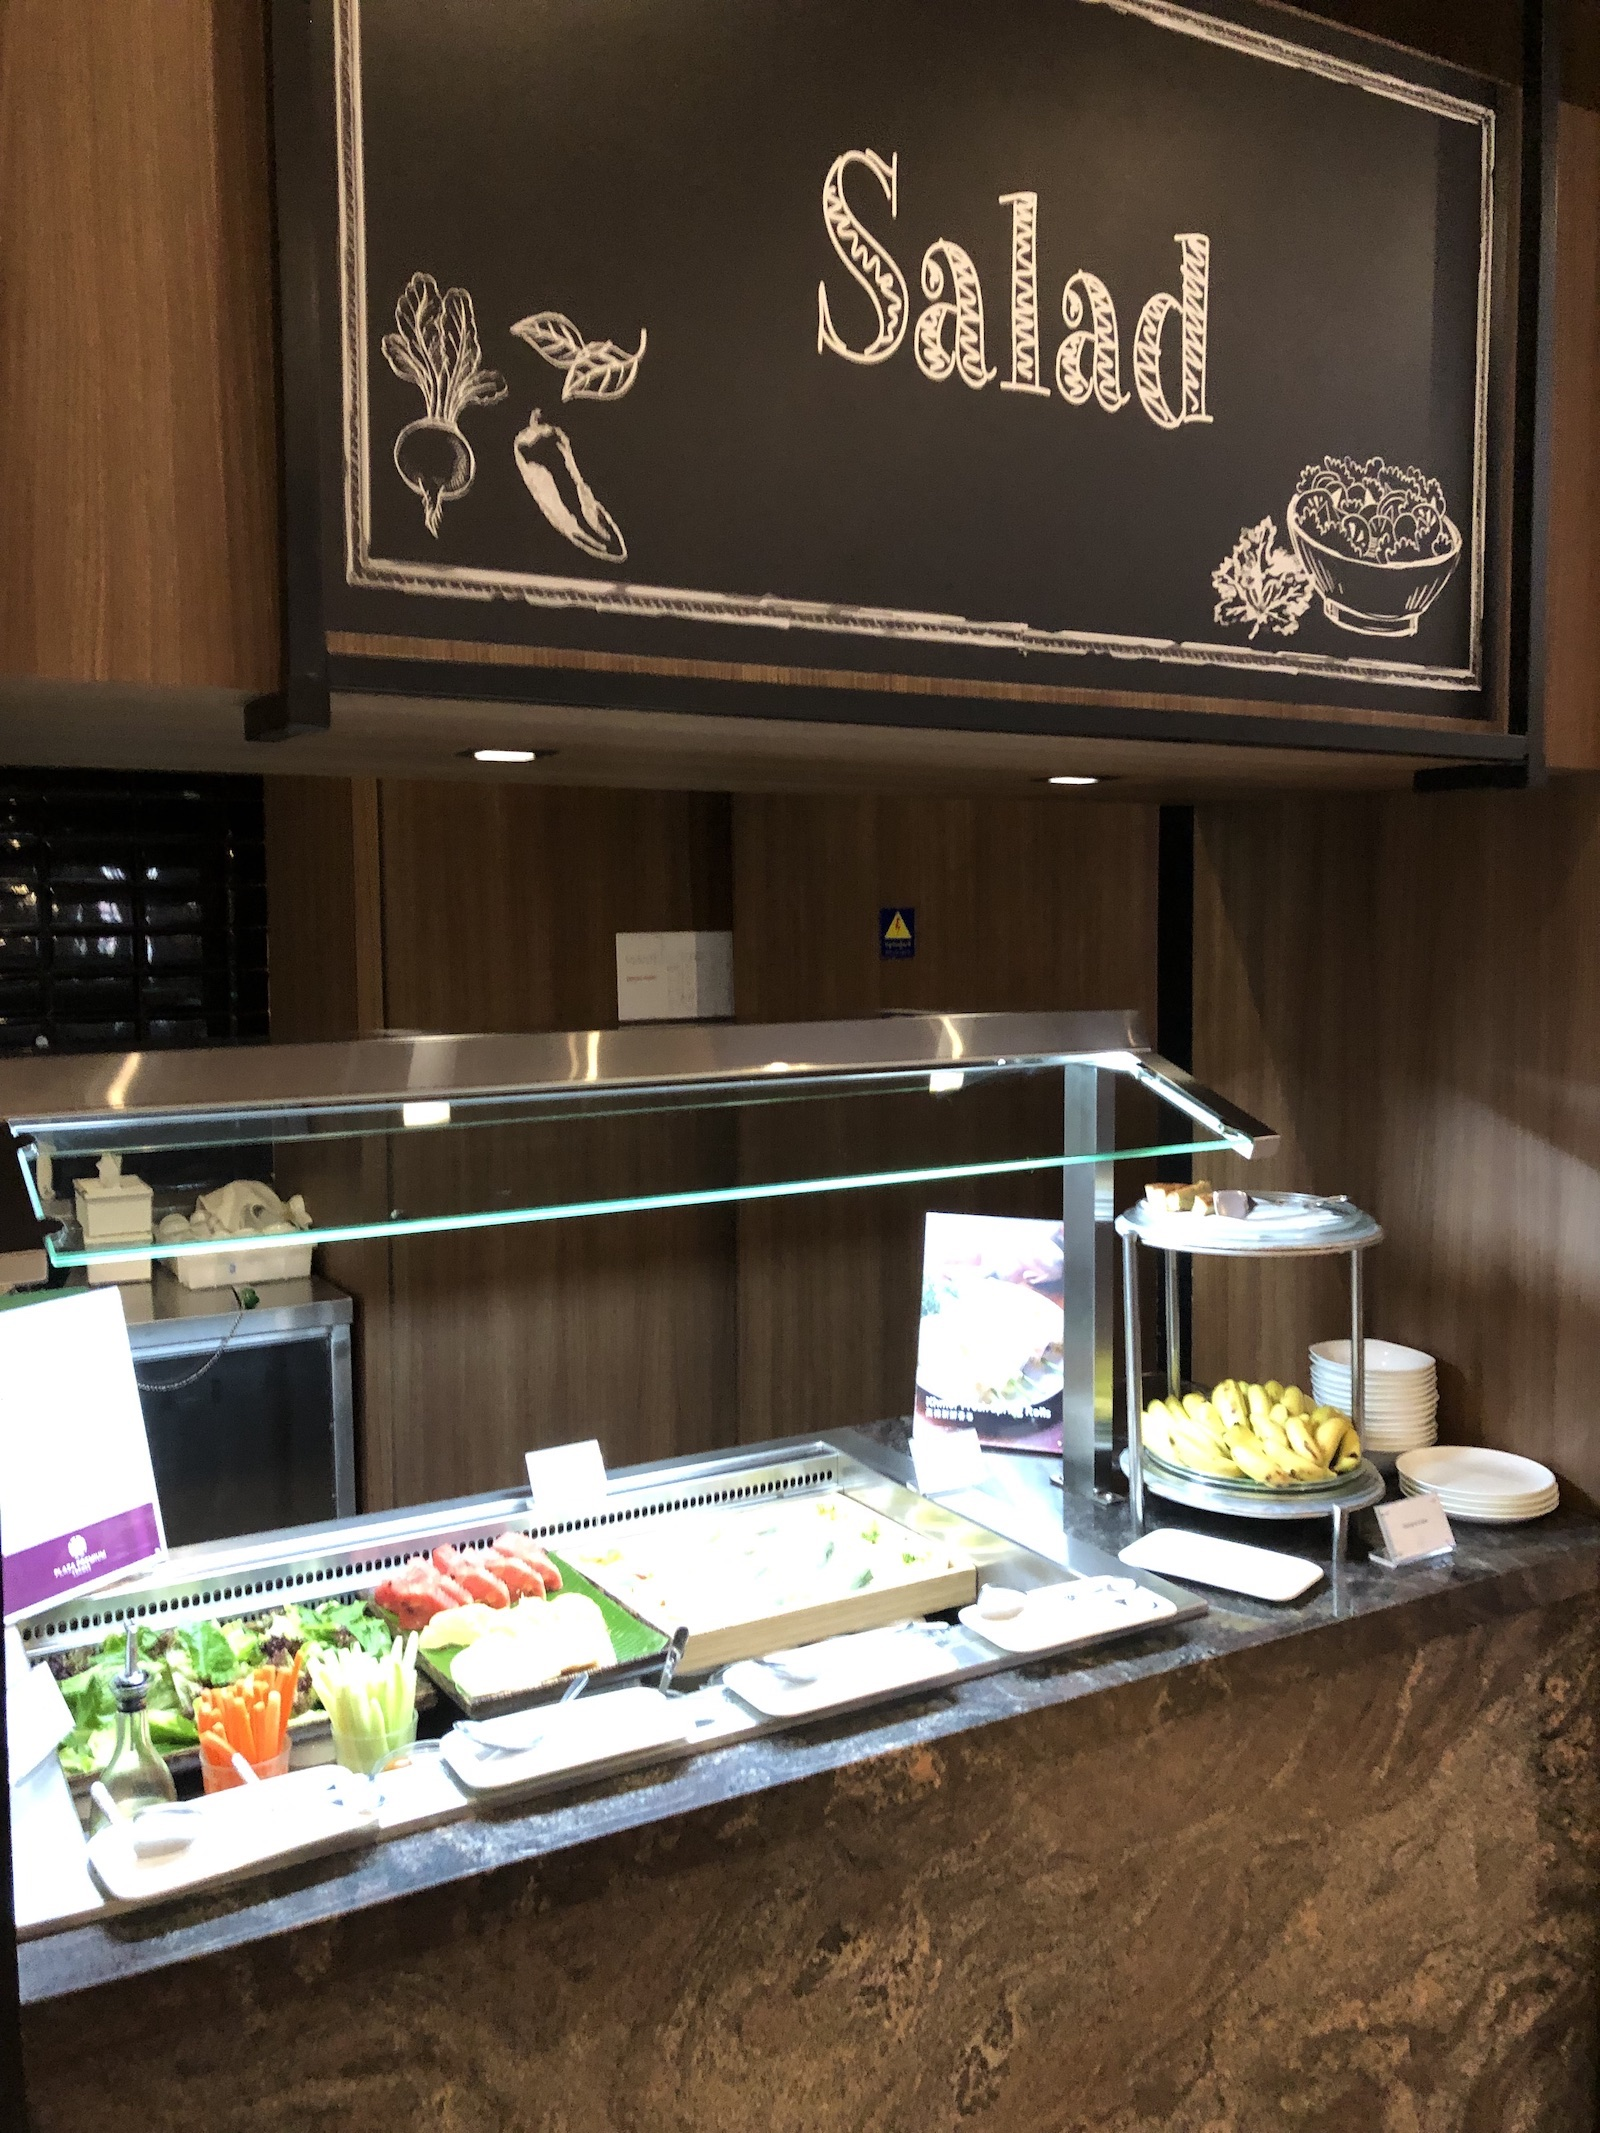 Salad choices at Plaza Premium Lounge